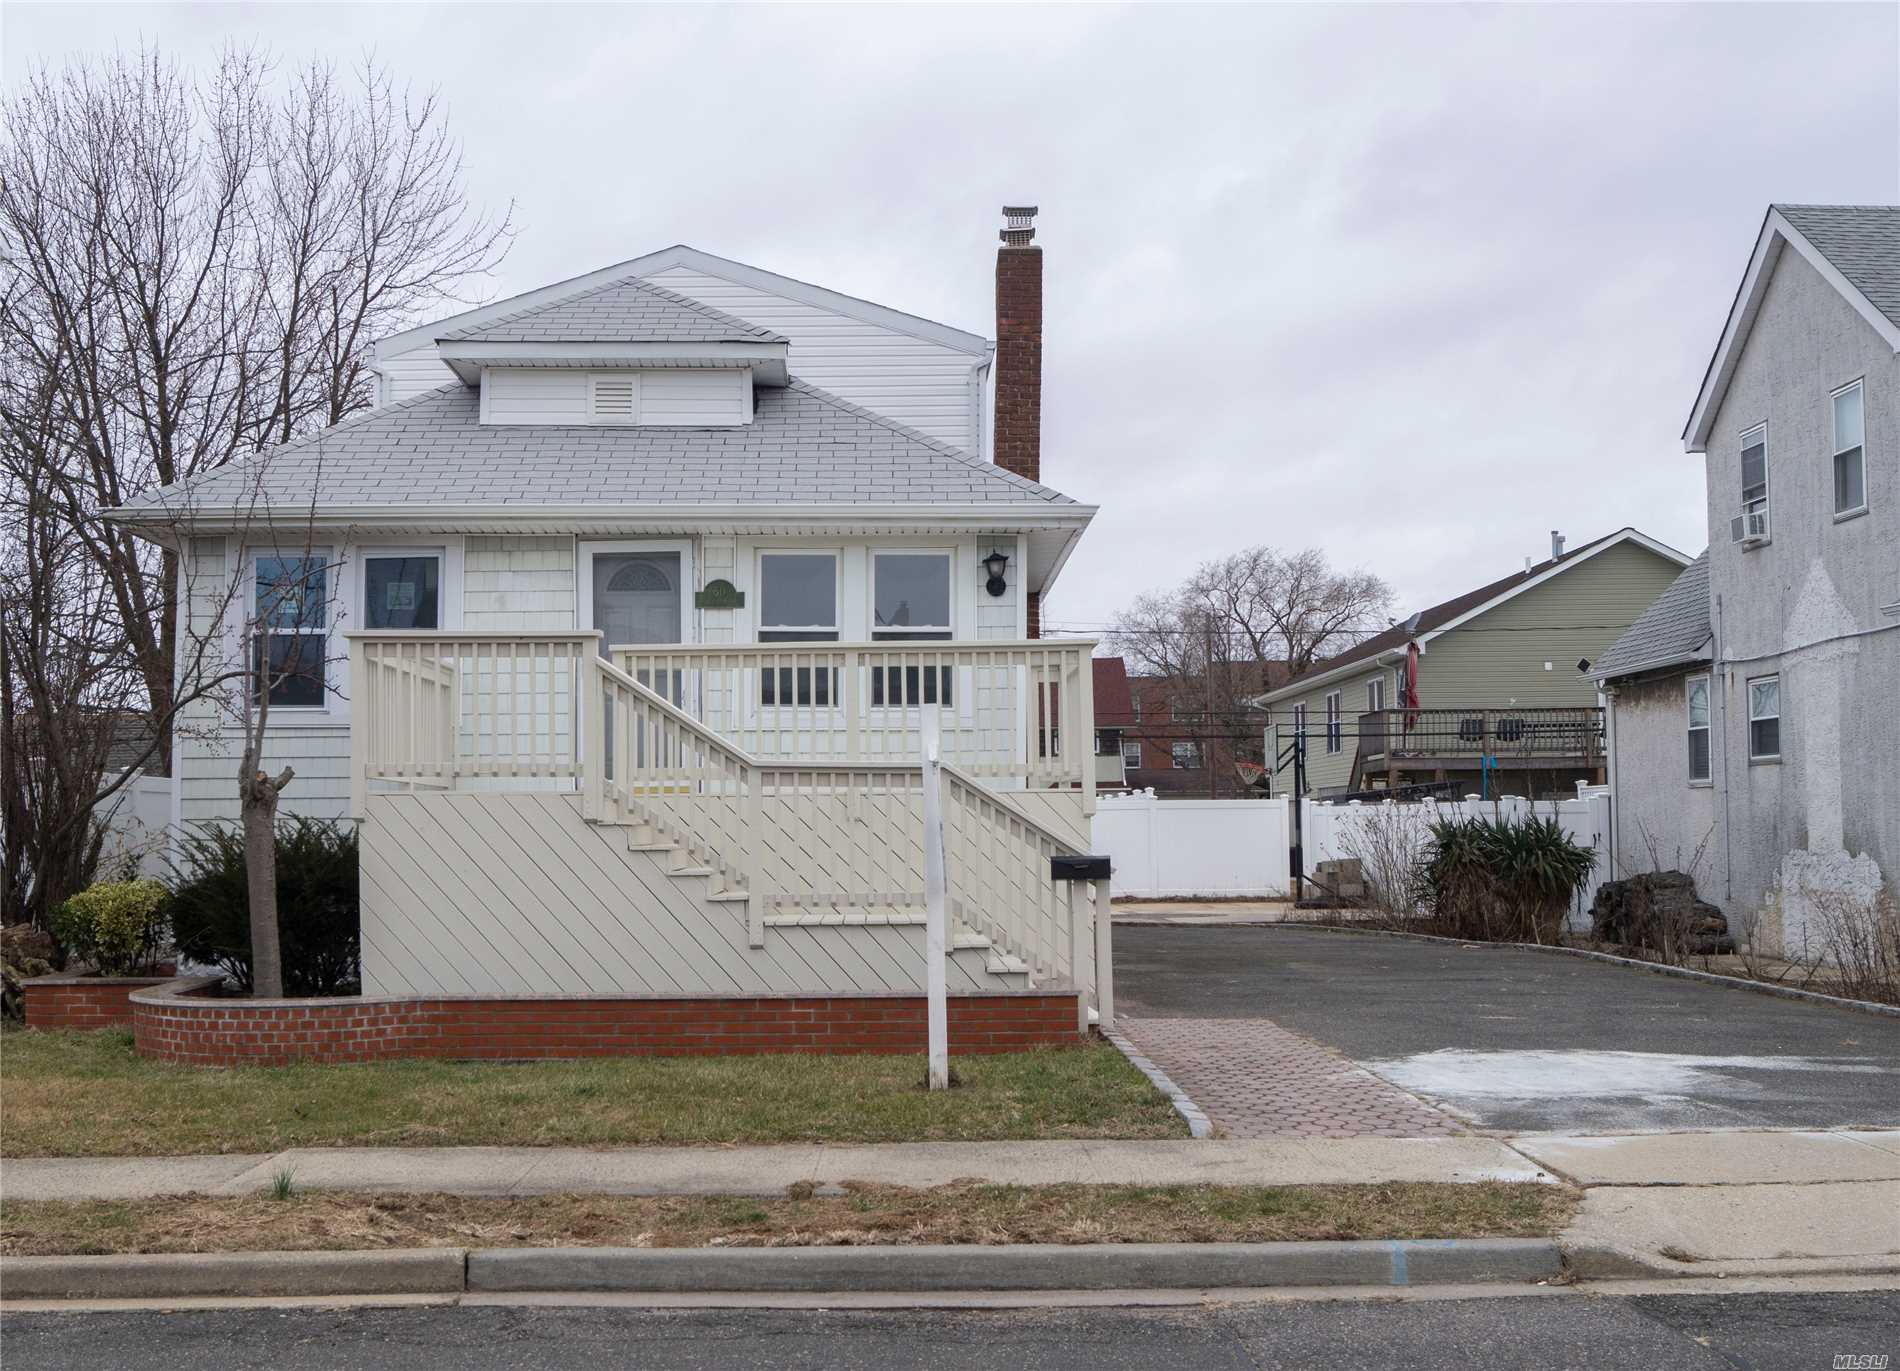 Newly Renovated, Spacious Home In The Village Of Island Park That Features New Hard Wood Floors, Windows, Kitchen, Bathrooms And Much More. The Photos Will Tell The Whole Story. In Walking Distance To Lirr, Bus, Restaurants, Shopping, Park, Etc. The Main Floor Of This Property Is Elevated 6 Feet From Ground Level. There Is An Elevation Certificate Attached To This Listing The Seller Has Completed For All Potential Buyers To Use In Order To Get Accurate Flood Insurance Quotes.